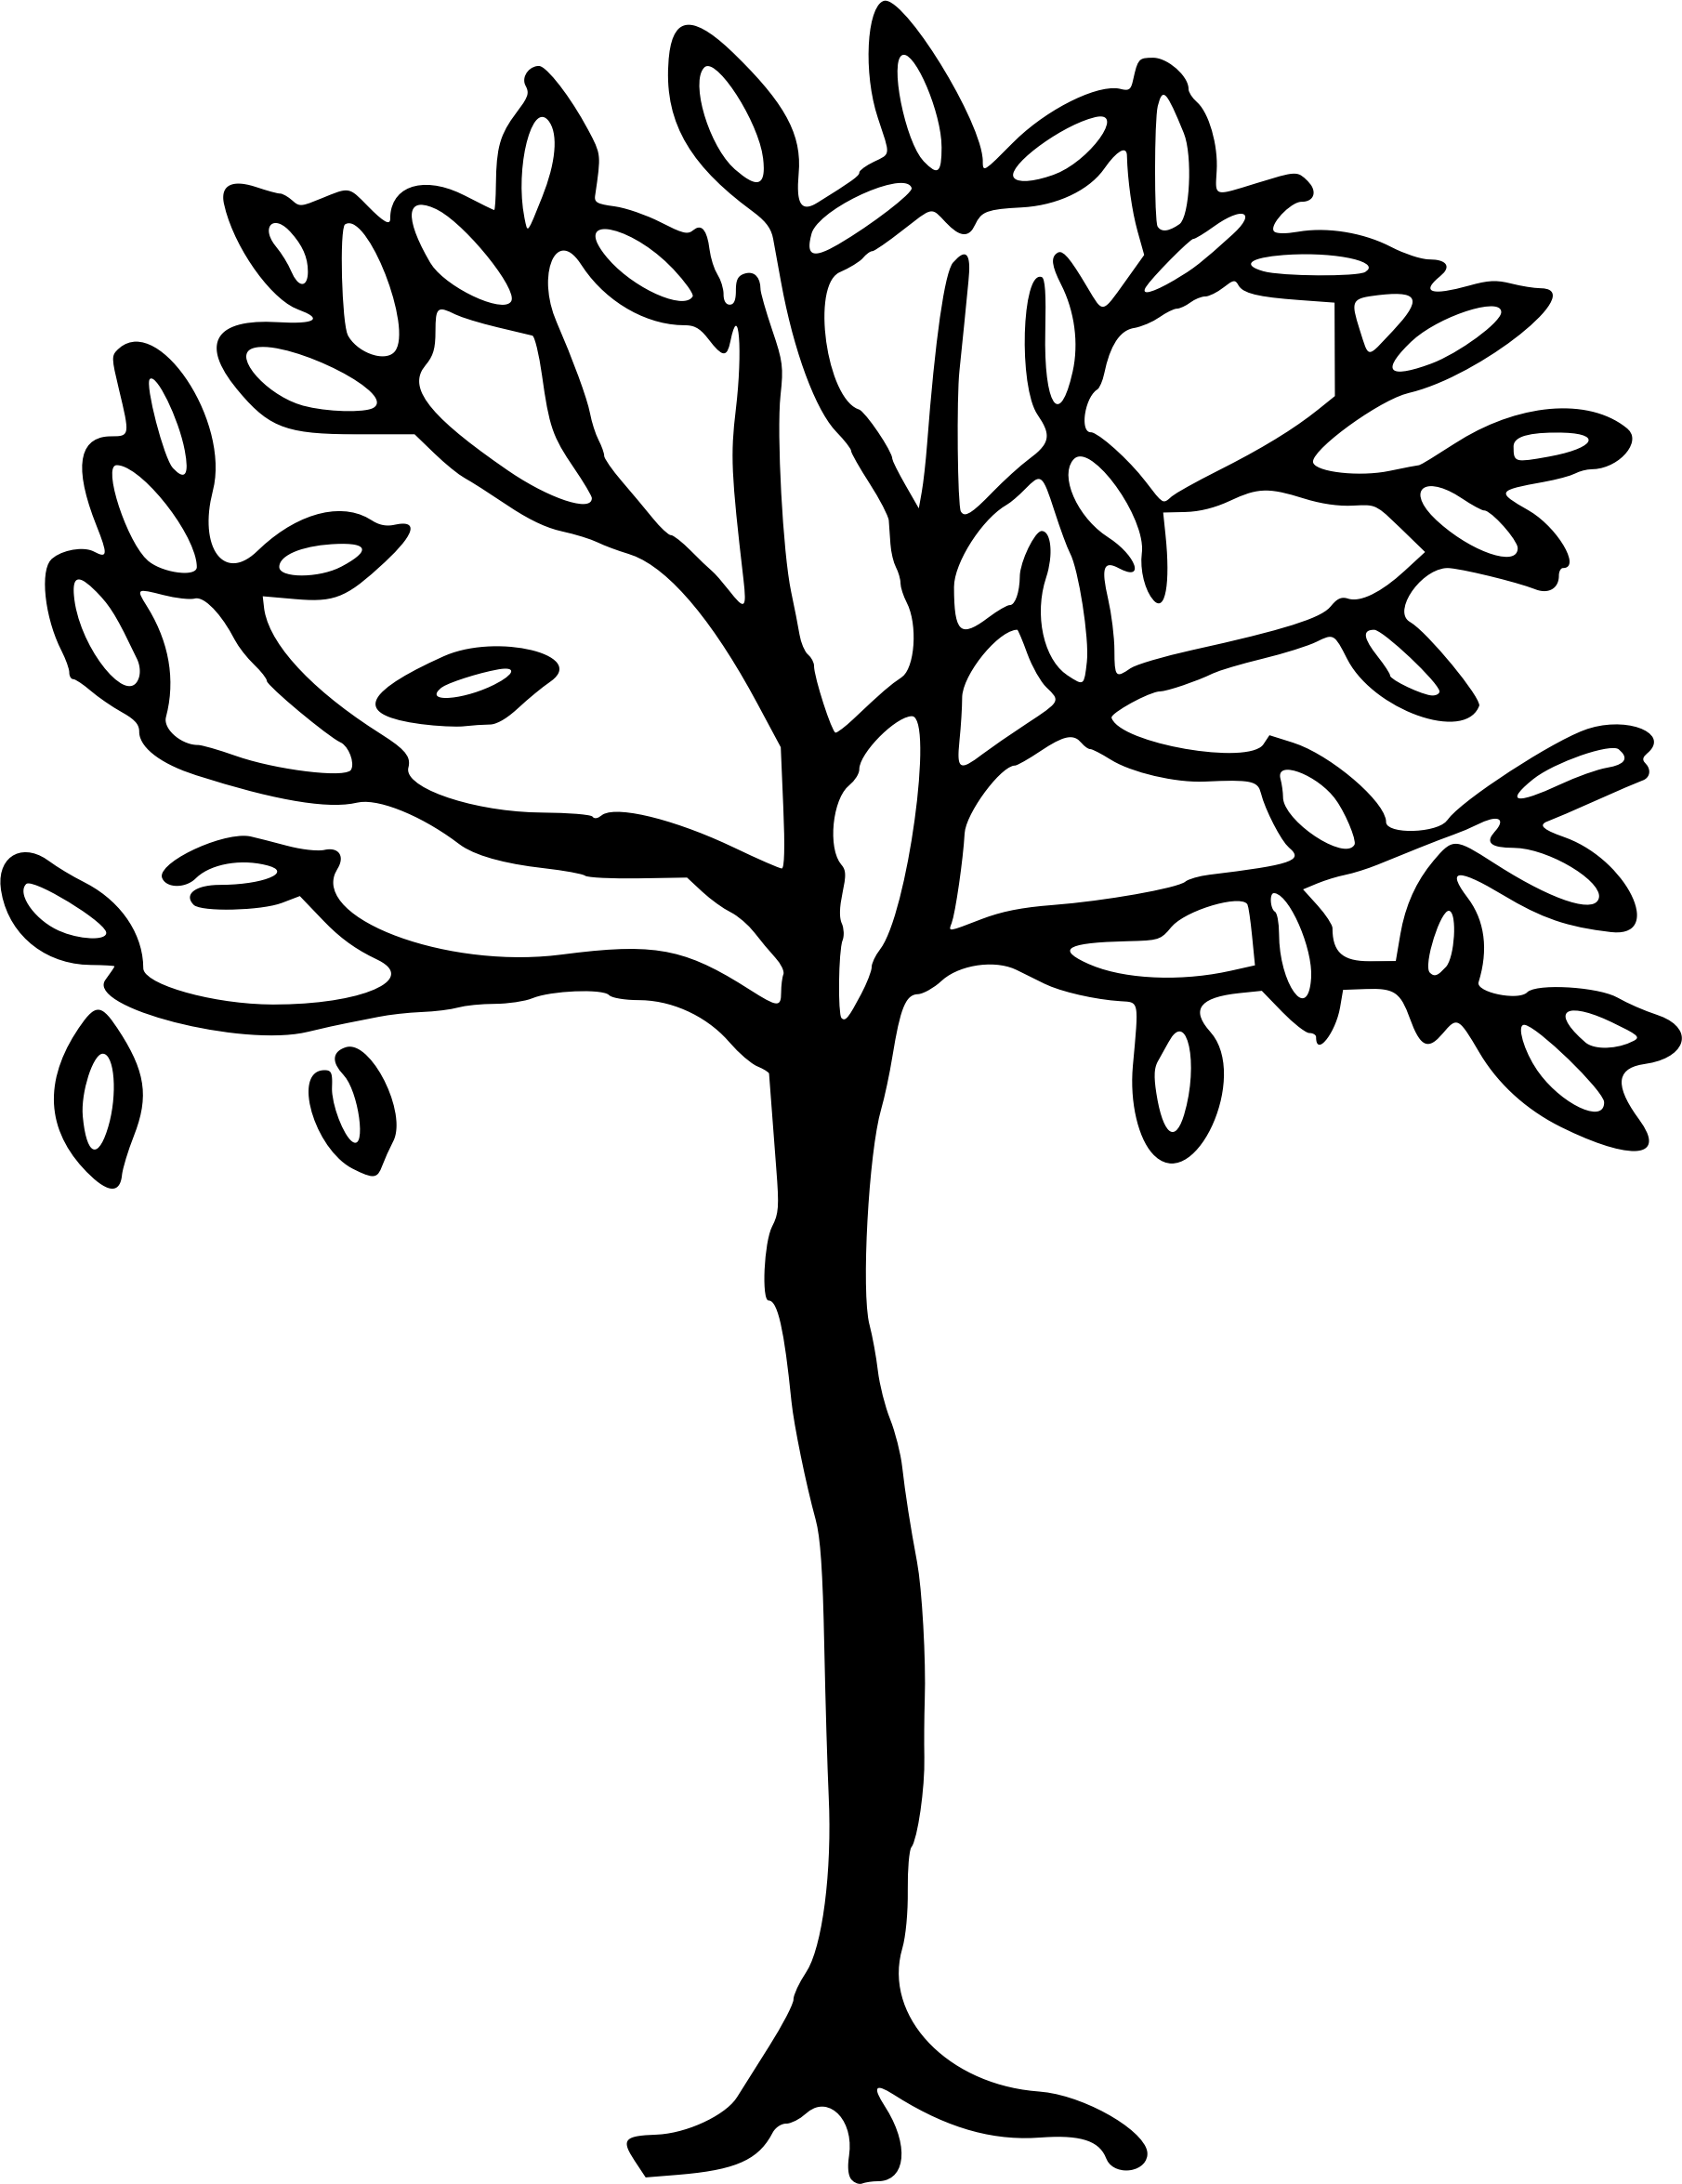 Library Of Simple Tree Graphic Library Download Black And